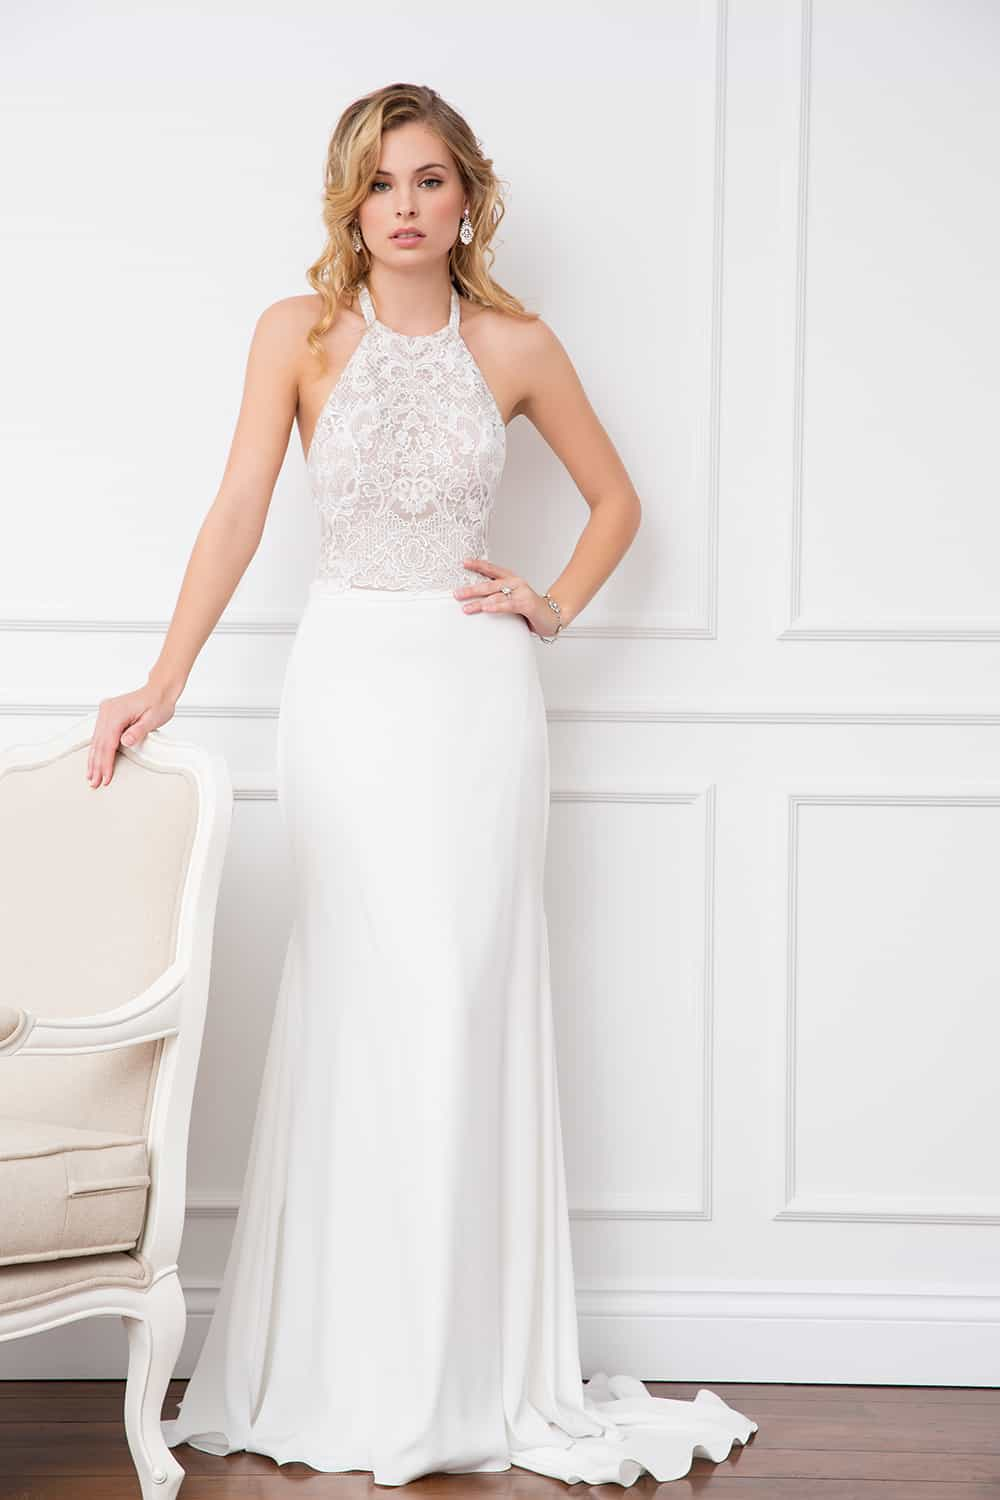 The Stefani embellished bodice and Valerie skirt from Wendy Makin Couture.